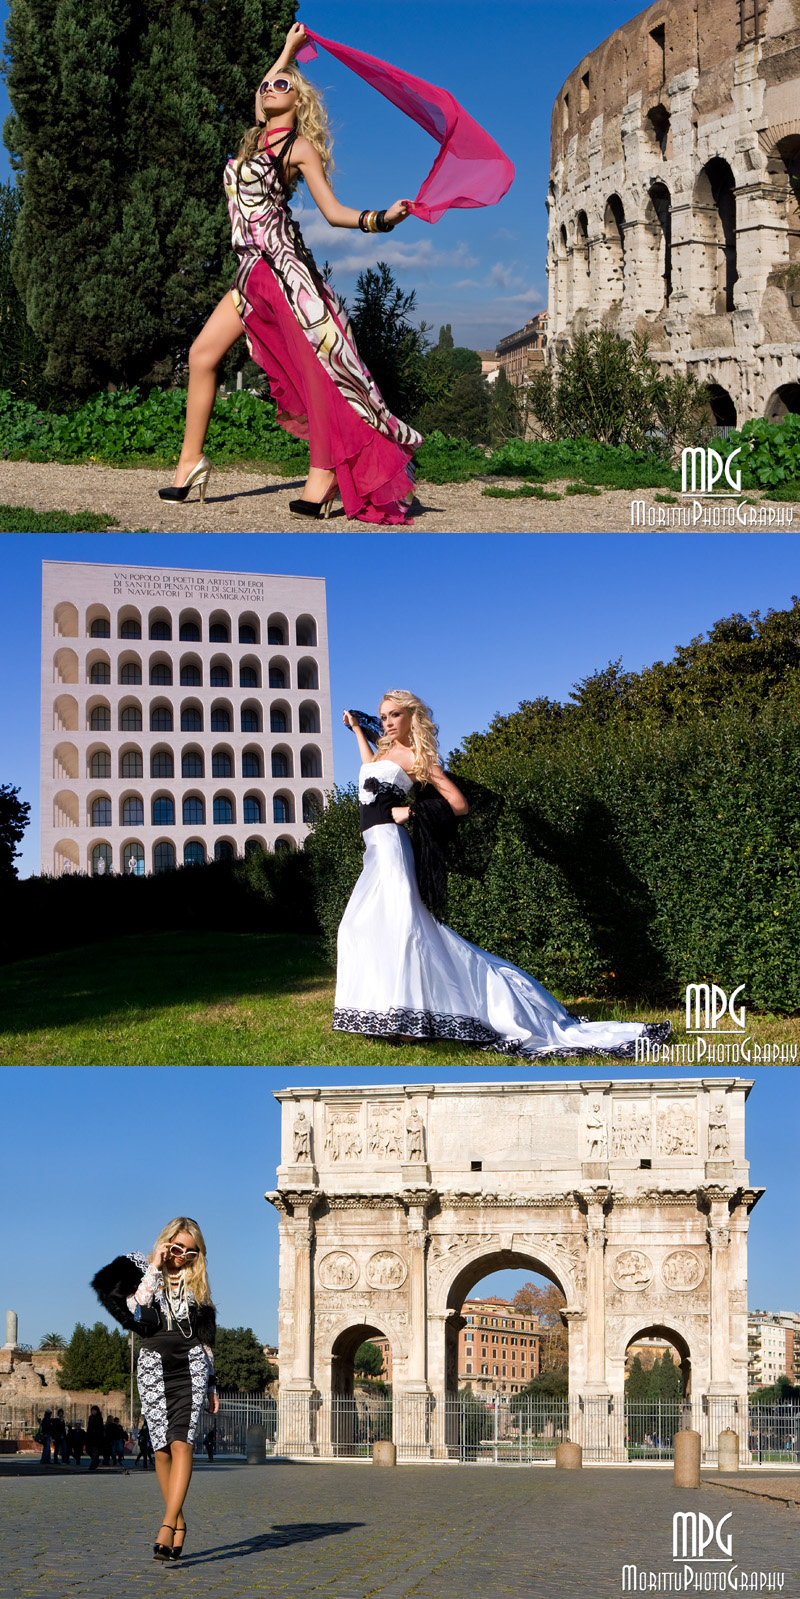 Rome - Italy . From top to down: Coliseum, EUR, Constantines Arch Jun 23, 2010 Marco Morittu - MorittuPhotoGraphy Multimedia 2010 Fashion Calendar - Model: Marianna